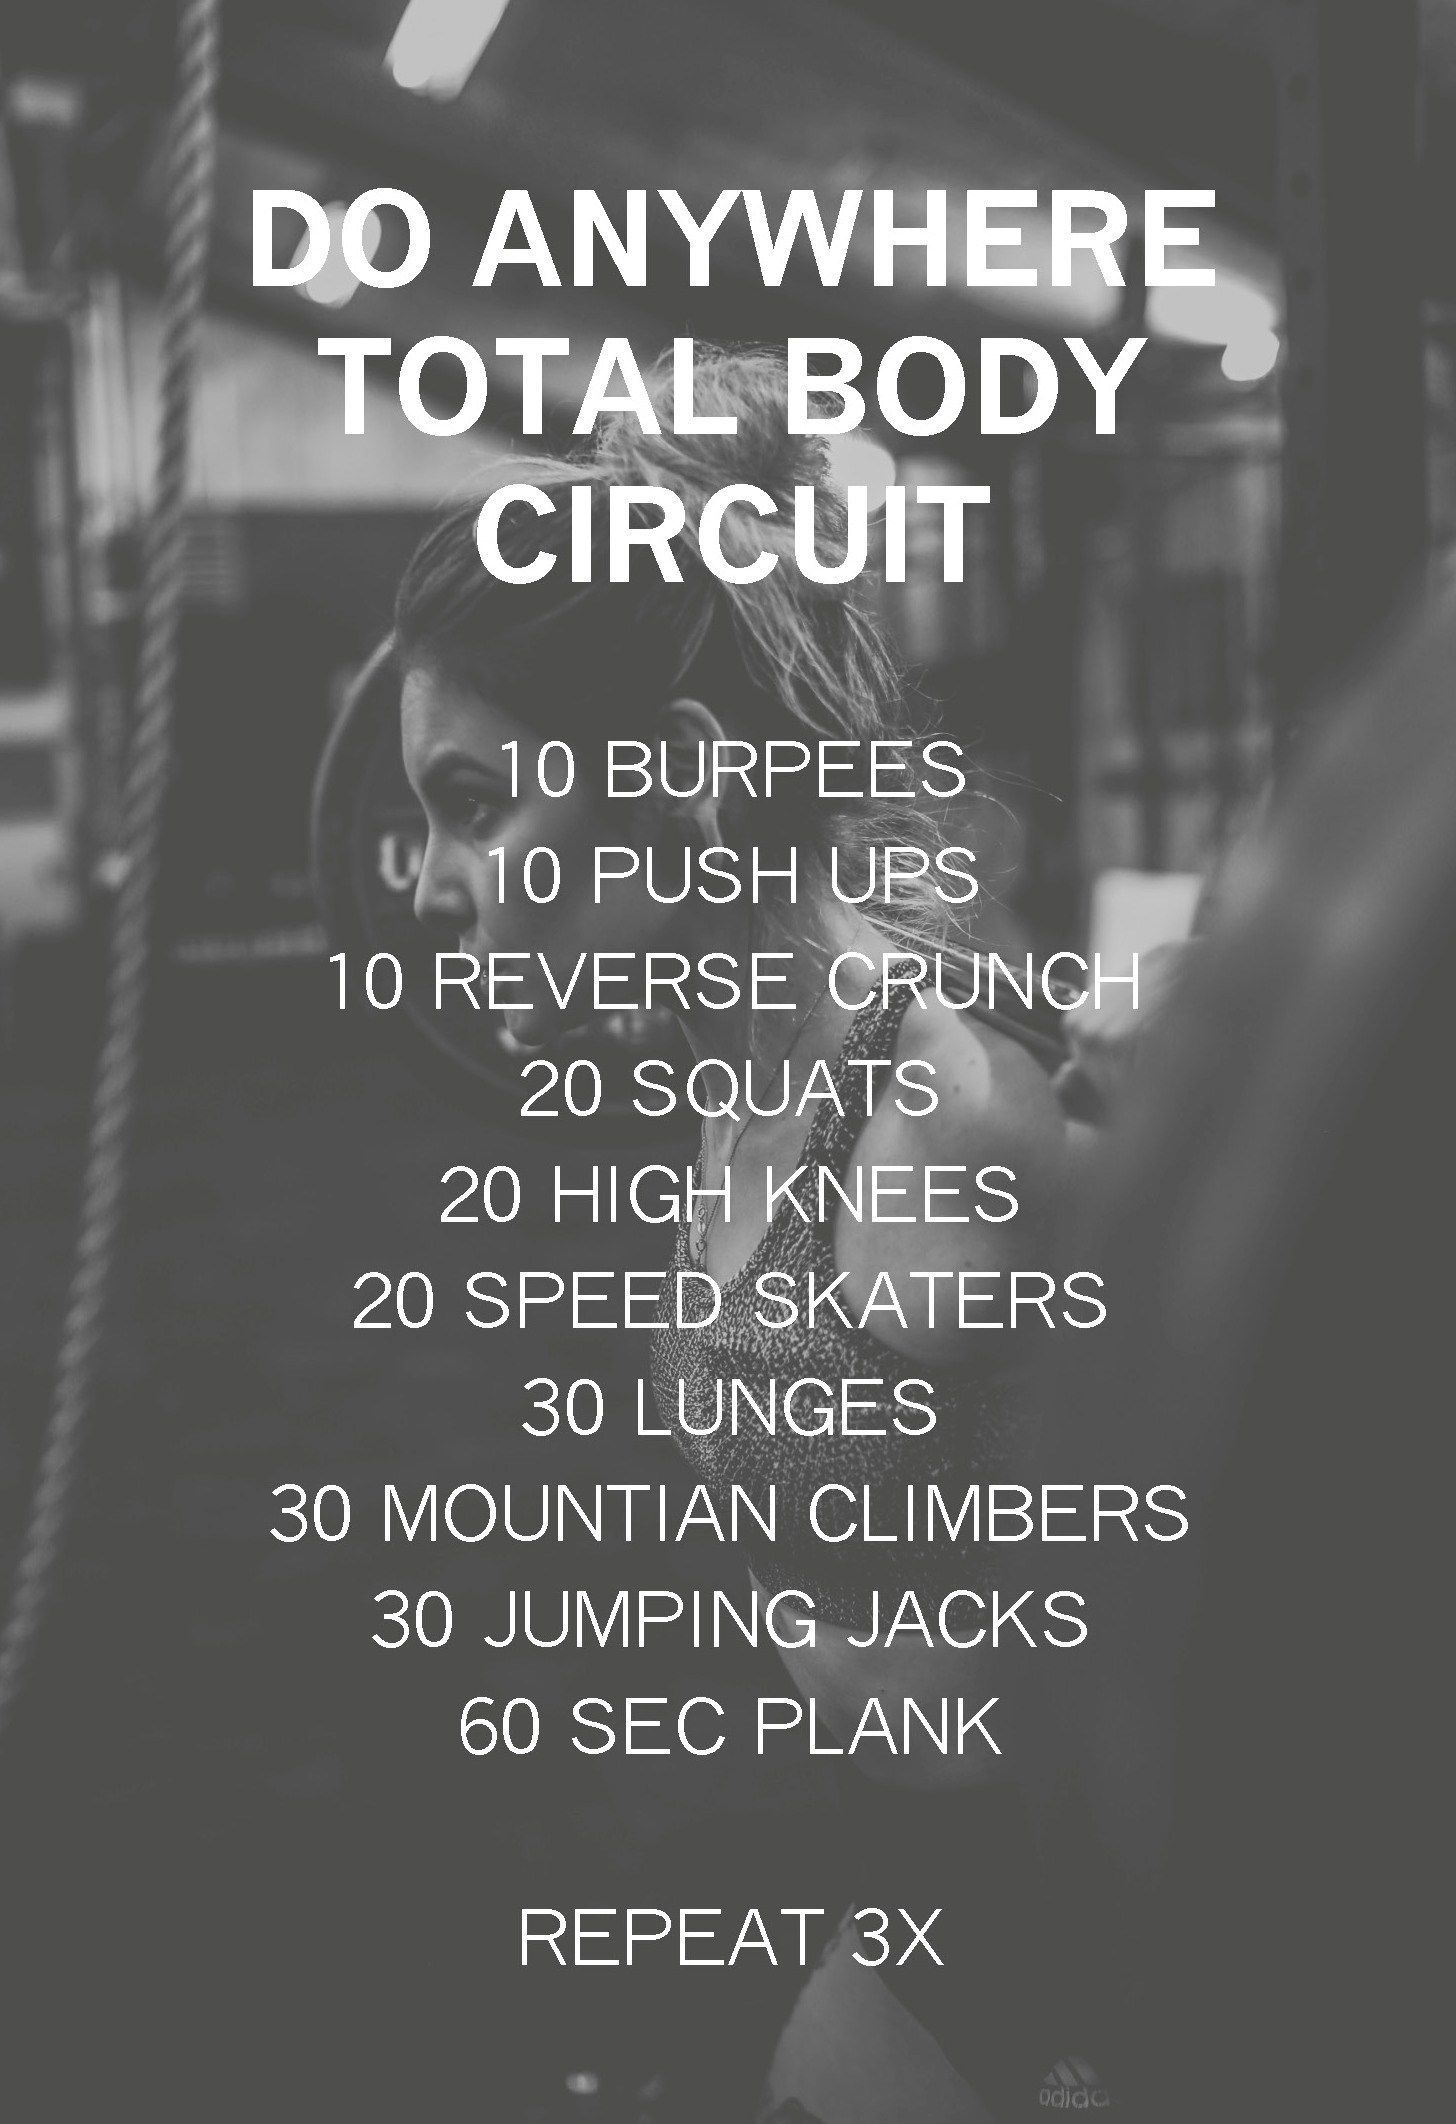 Do Anywhere Total Body Circuit Workout   Experiments In Wellness